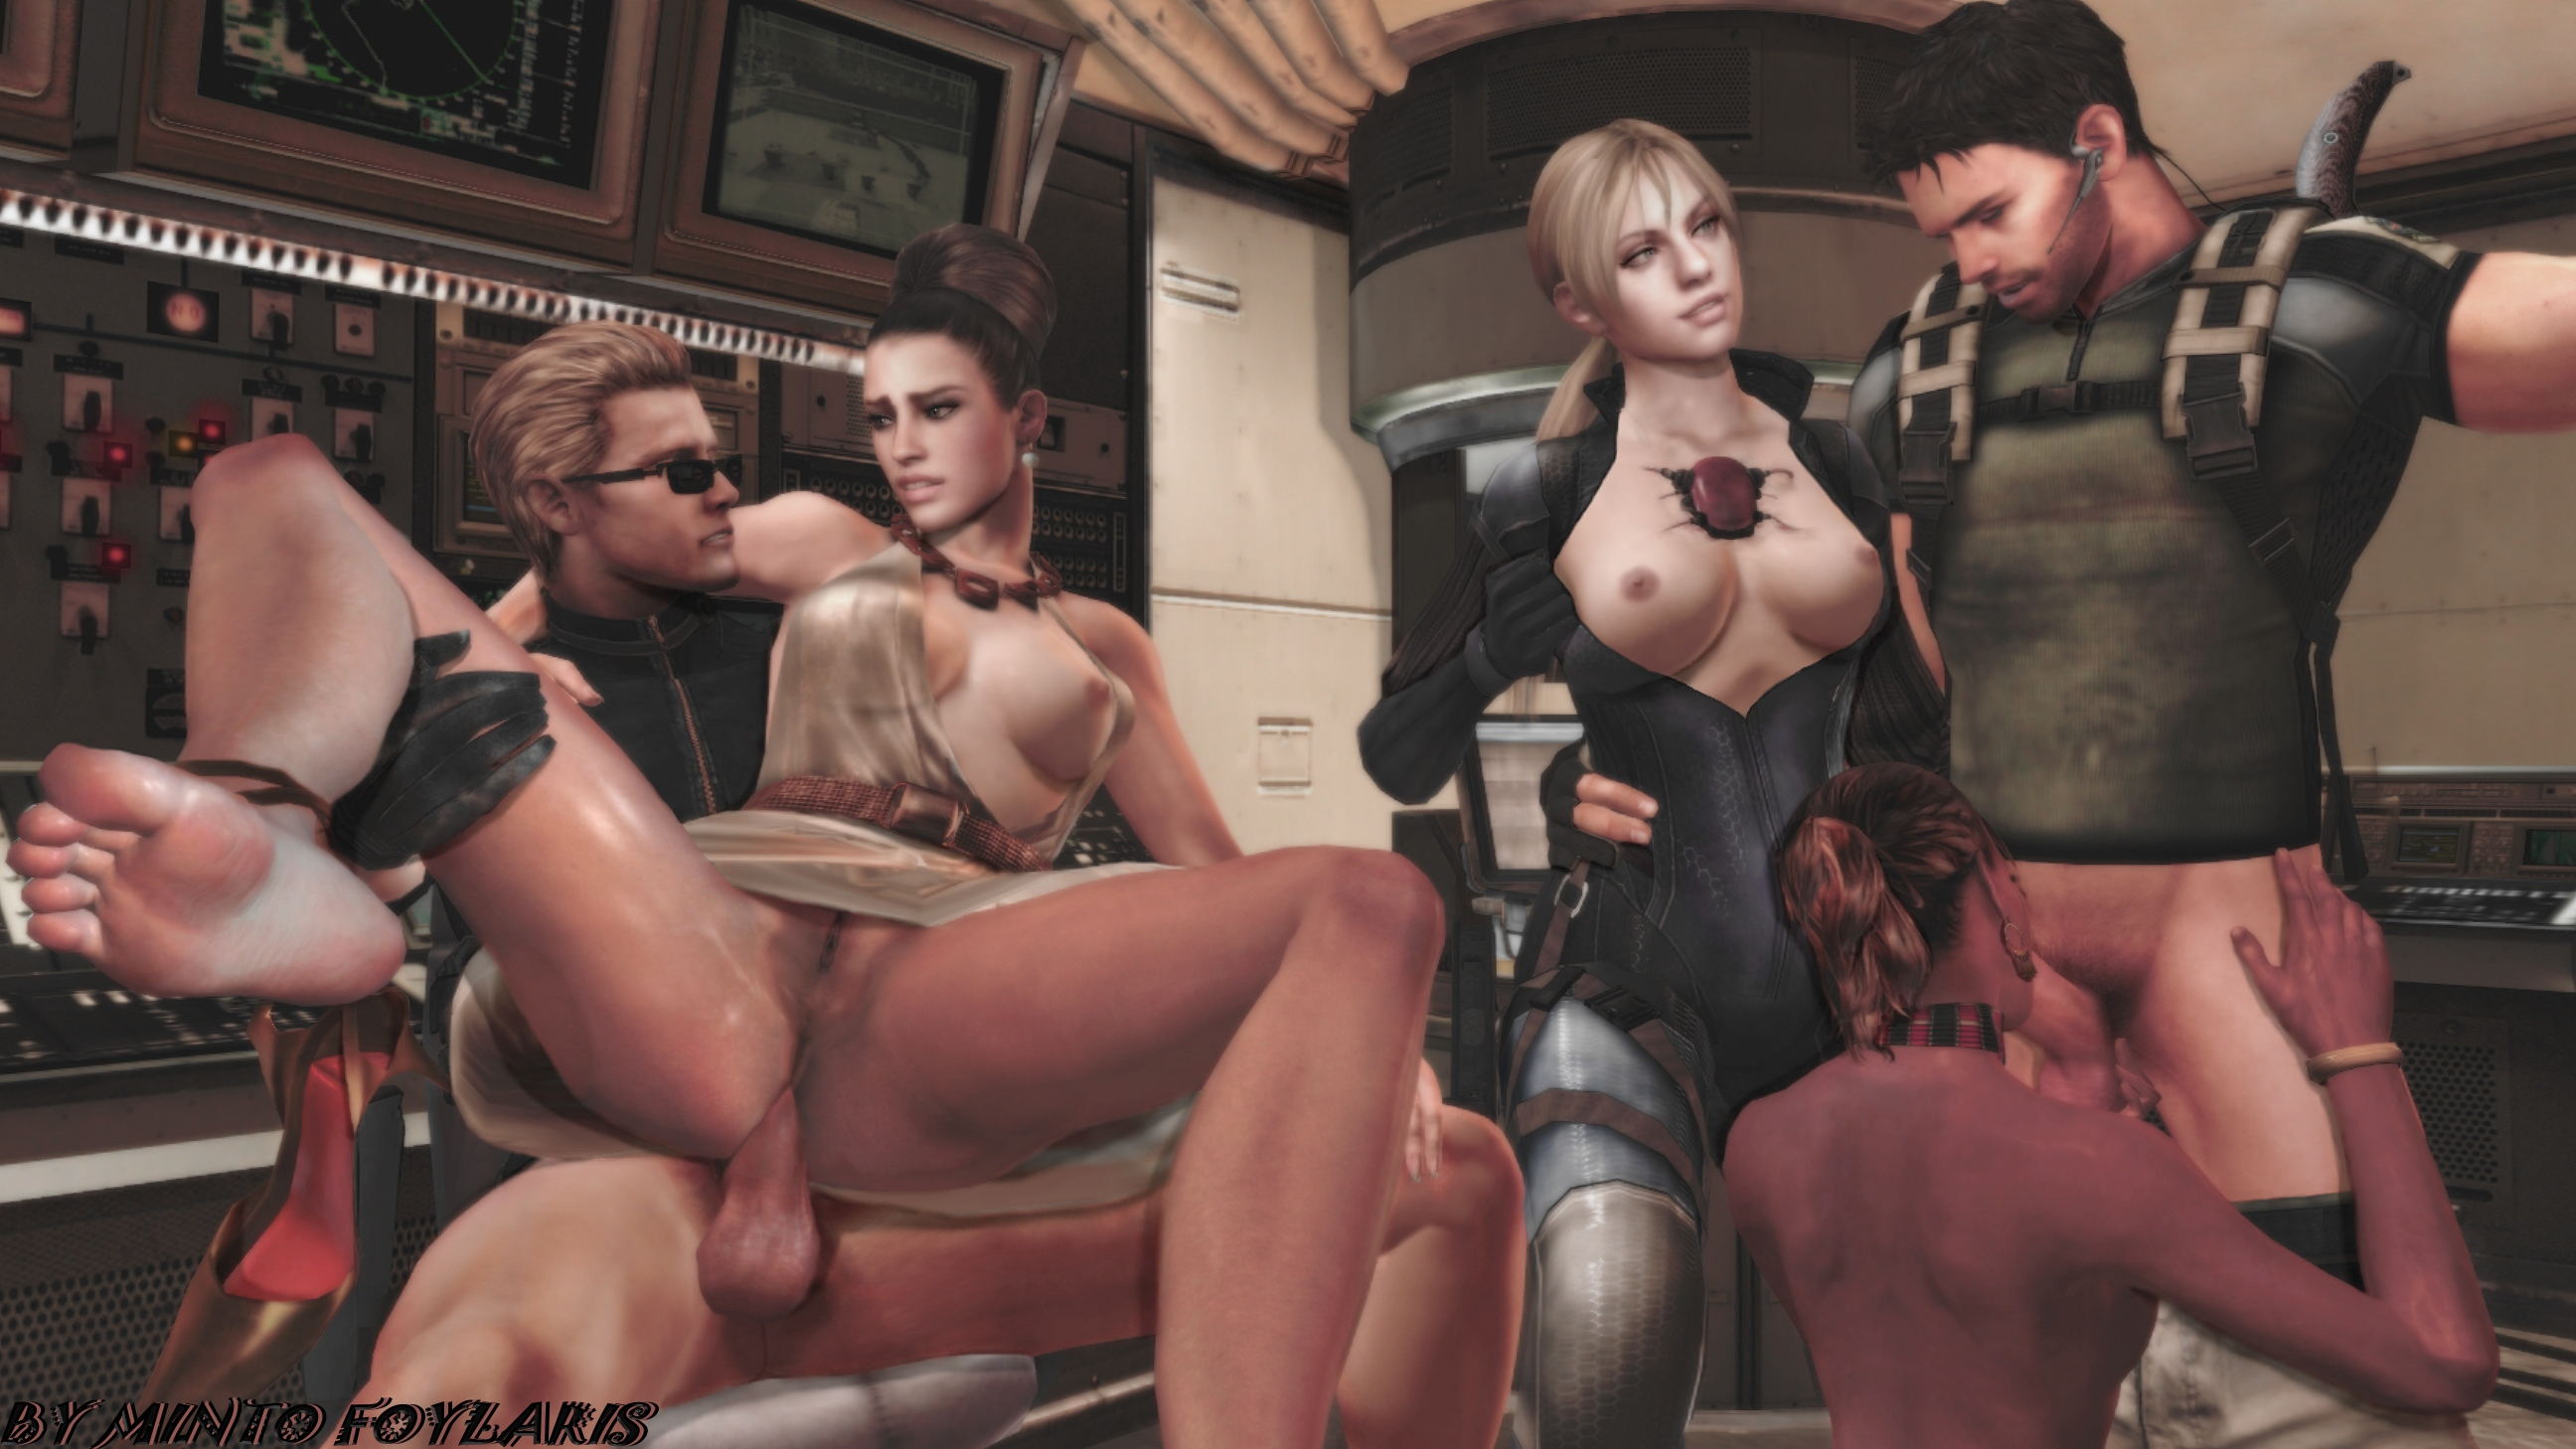 Suggest you Resident Evil 5 nude jill fucking sheva remarkable